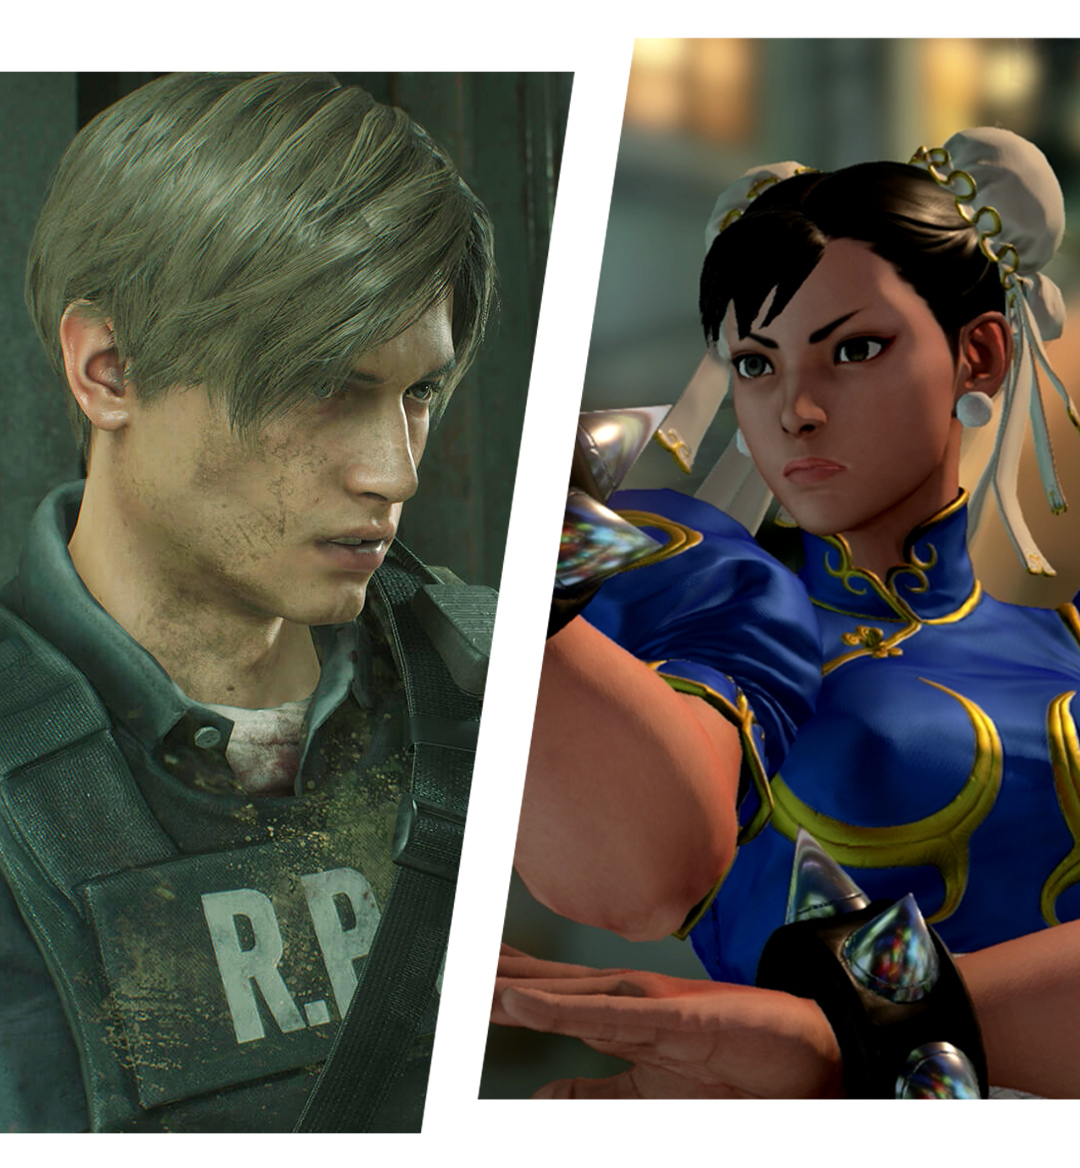 resident evil 2 street fighter v devil may cry 5 mobile